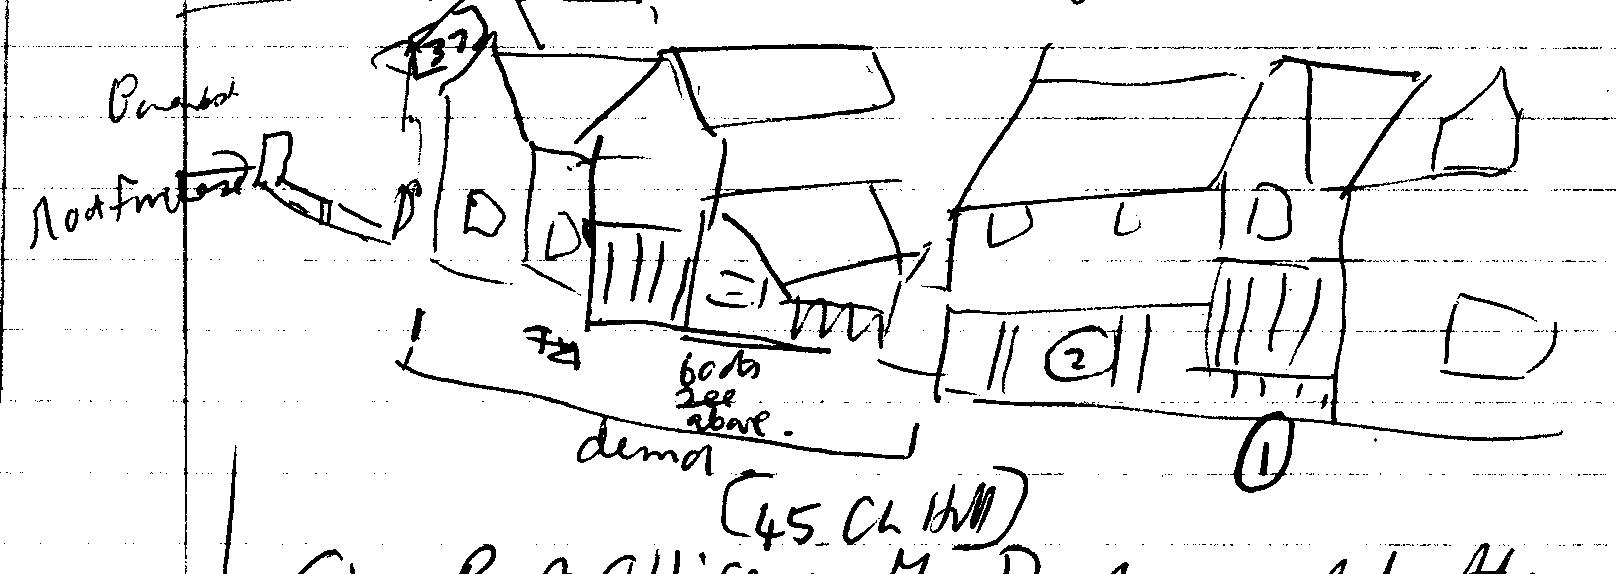 tape 007, pic 3, chipping hill looking west, drawing